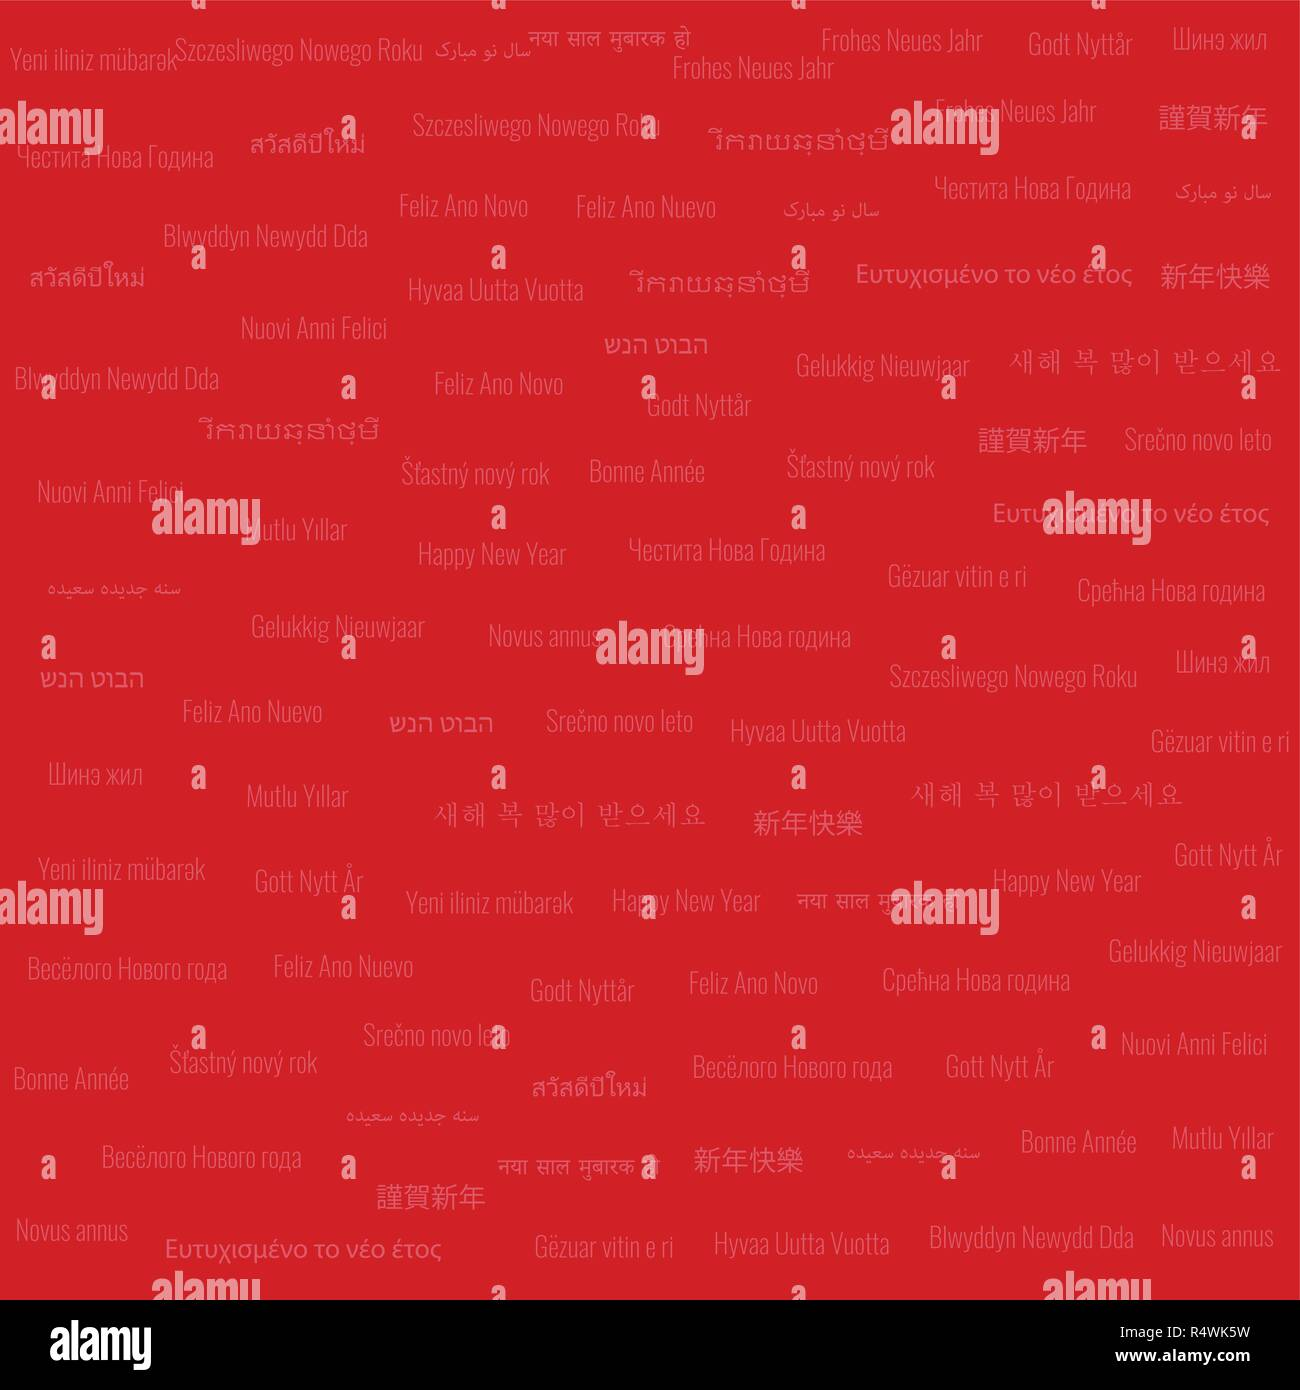 Christmas & New Year Themed Background Low Density Tile Contains 'Happy New Year' Text in Many Different Languages on Red Background - Stock Image